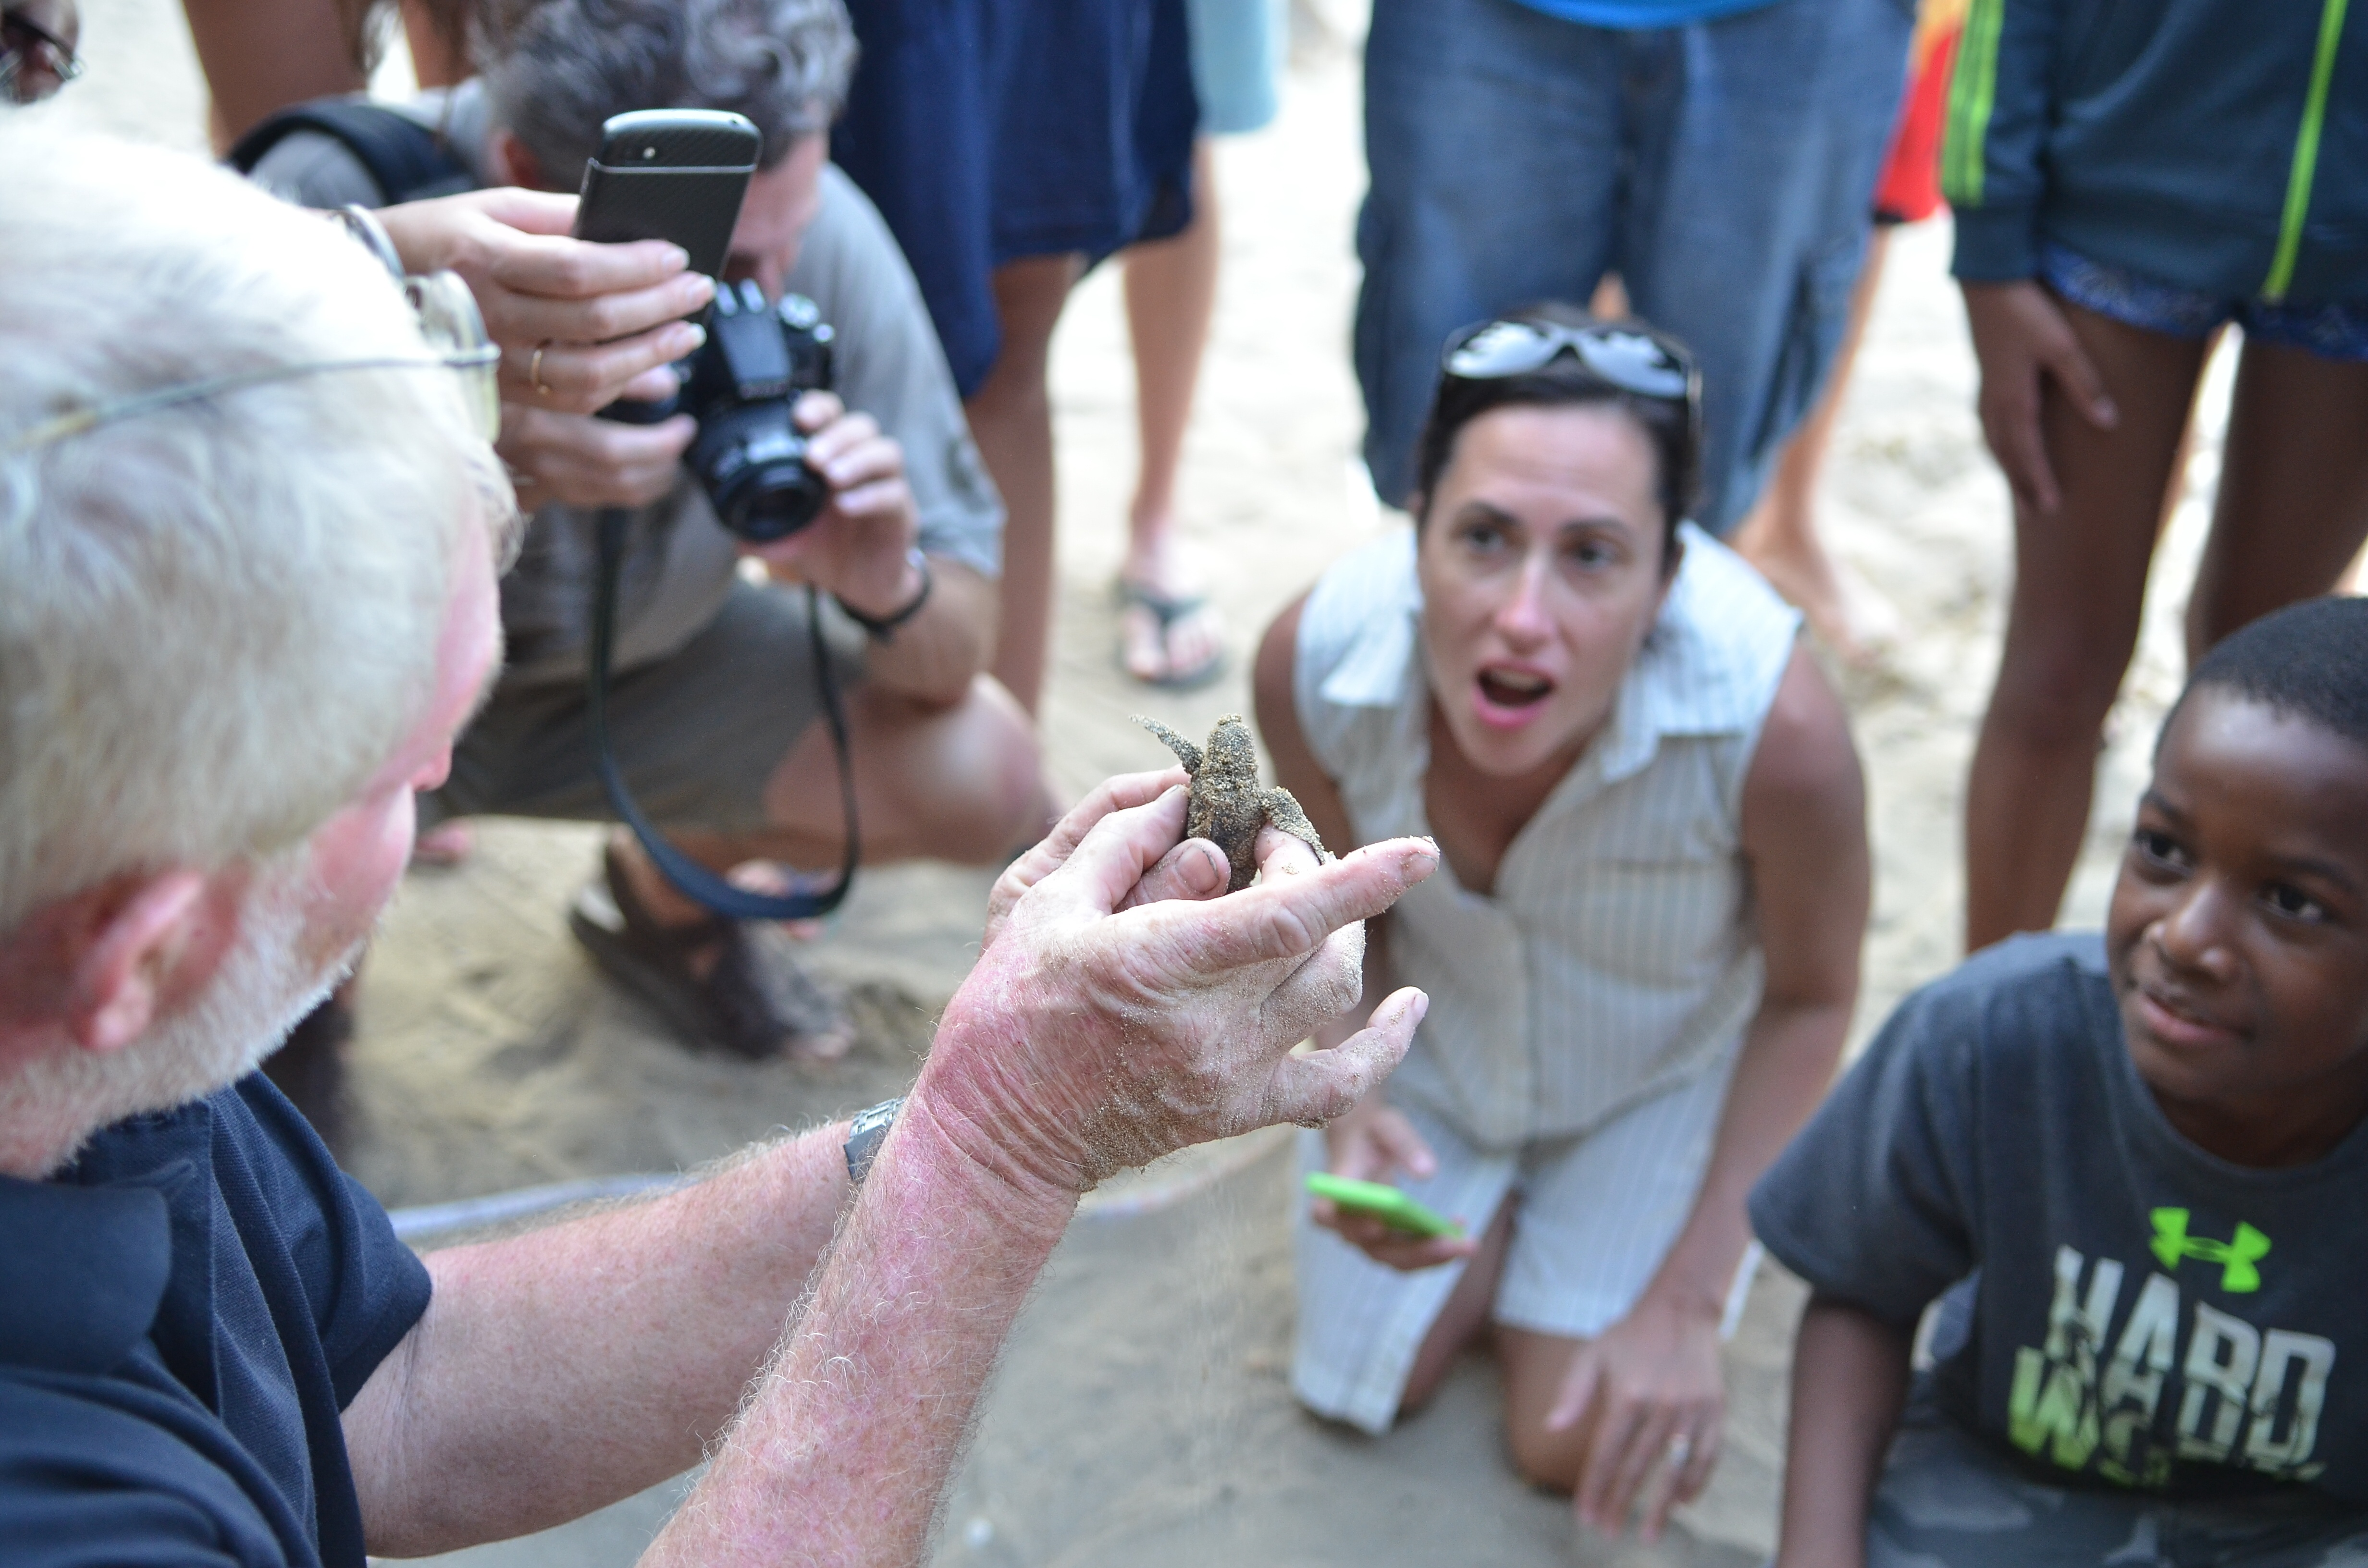 Melvyn Tennant with a baby turtle (Melvyn Tennant/PA)